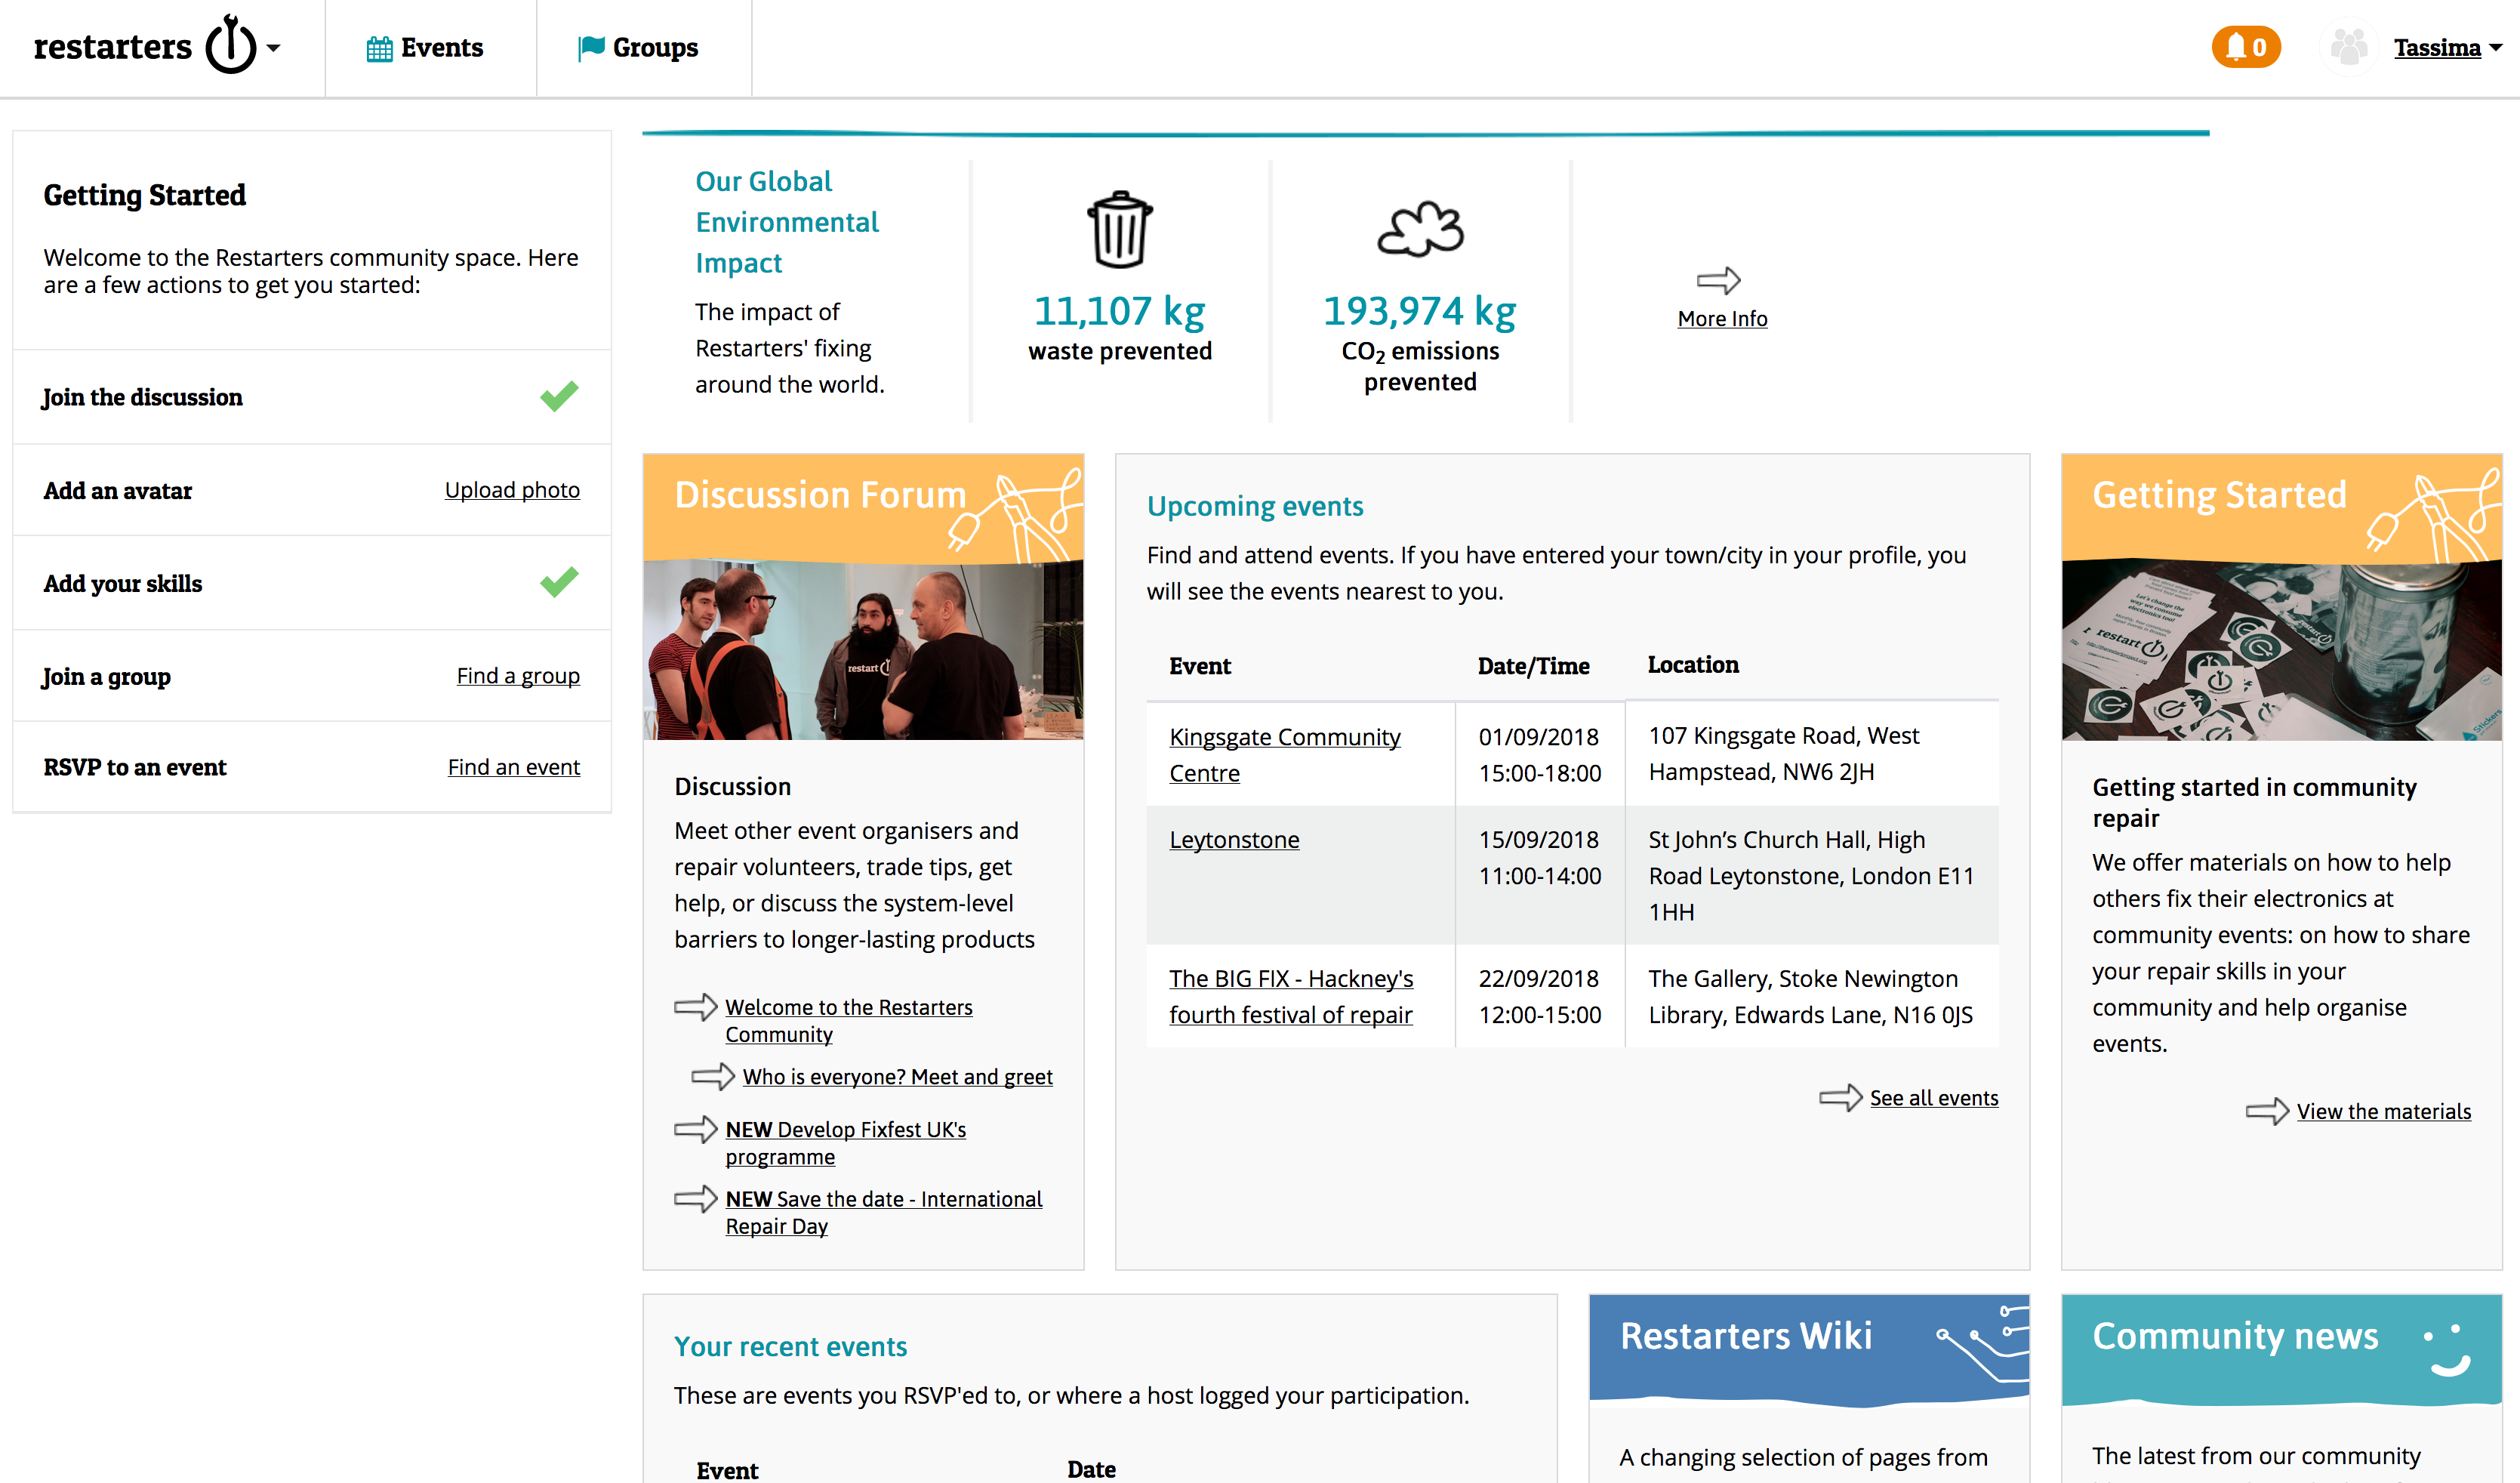 Restarters dashboard - the different areas of the community platform: Getting started, global impact, discussion area, wiki, Restart party kit, community news and upcoming events